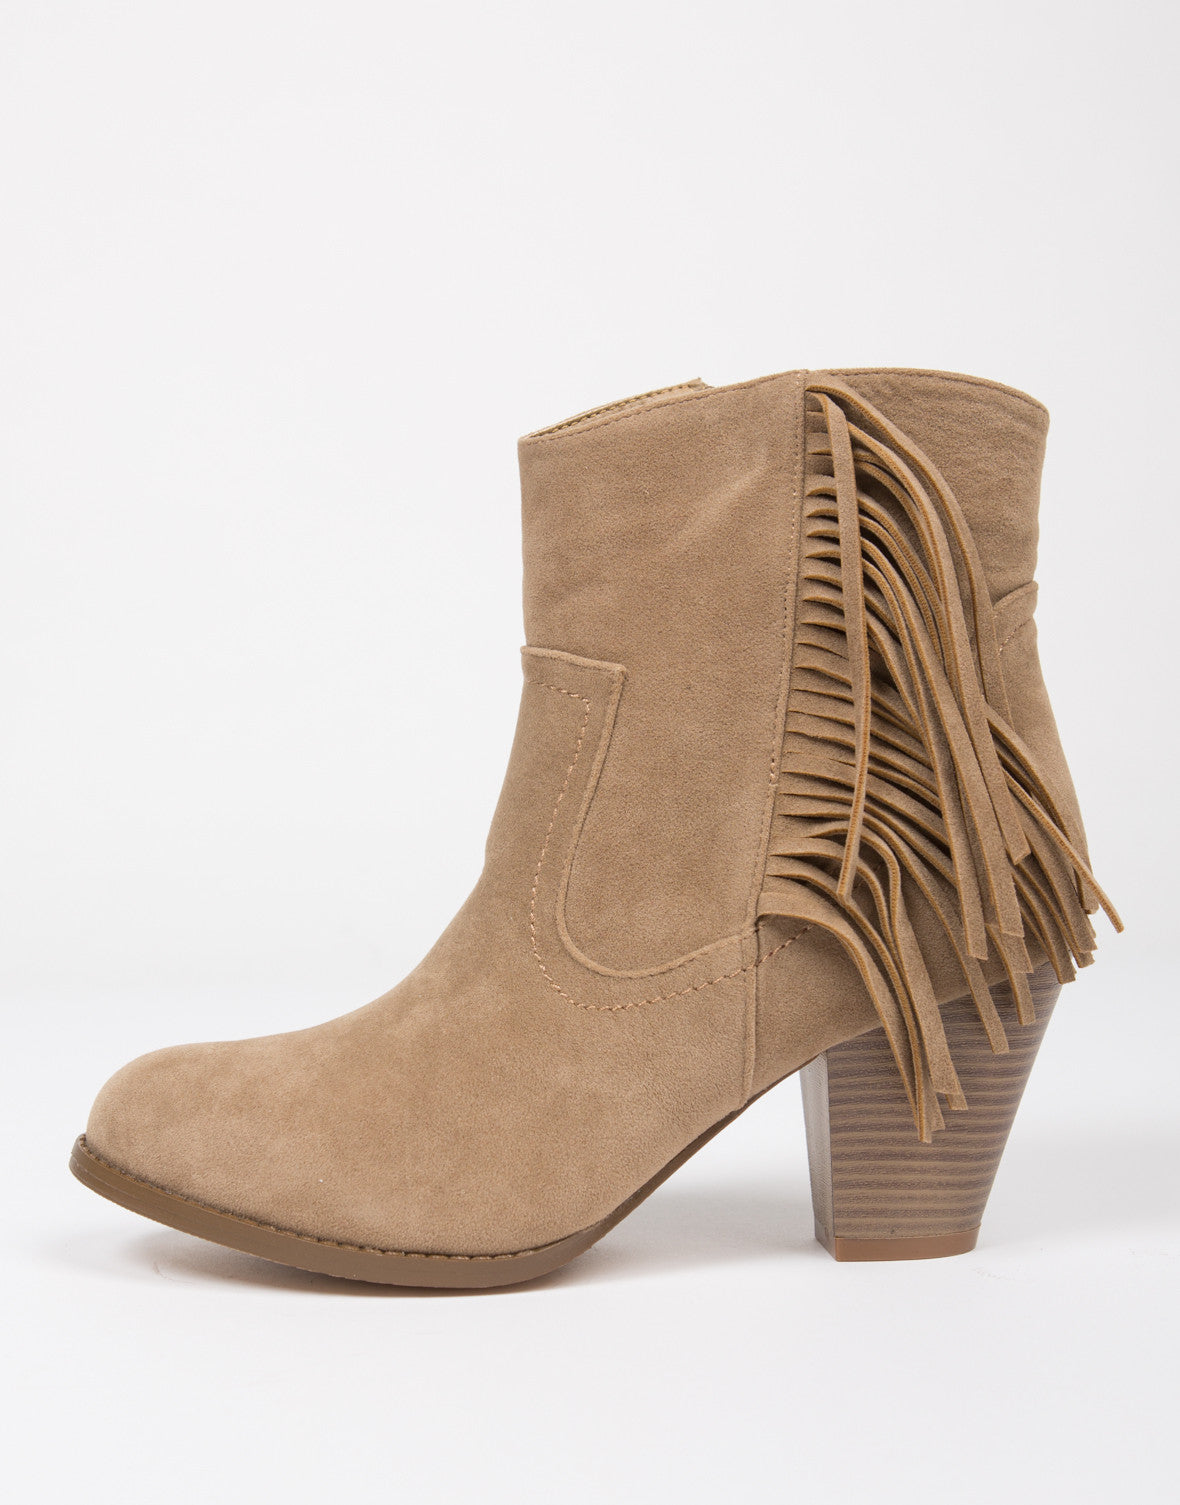 Fringed Leather Ankle Boots